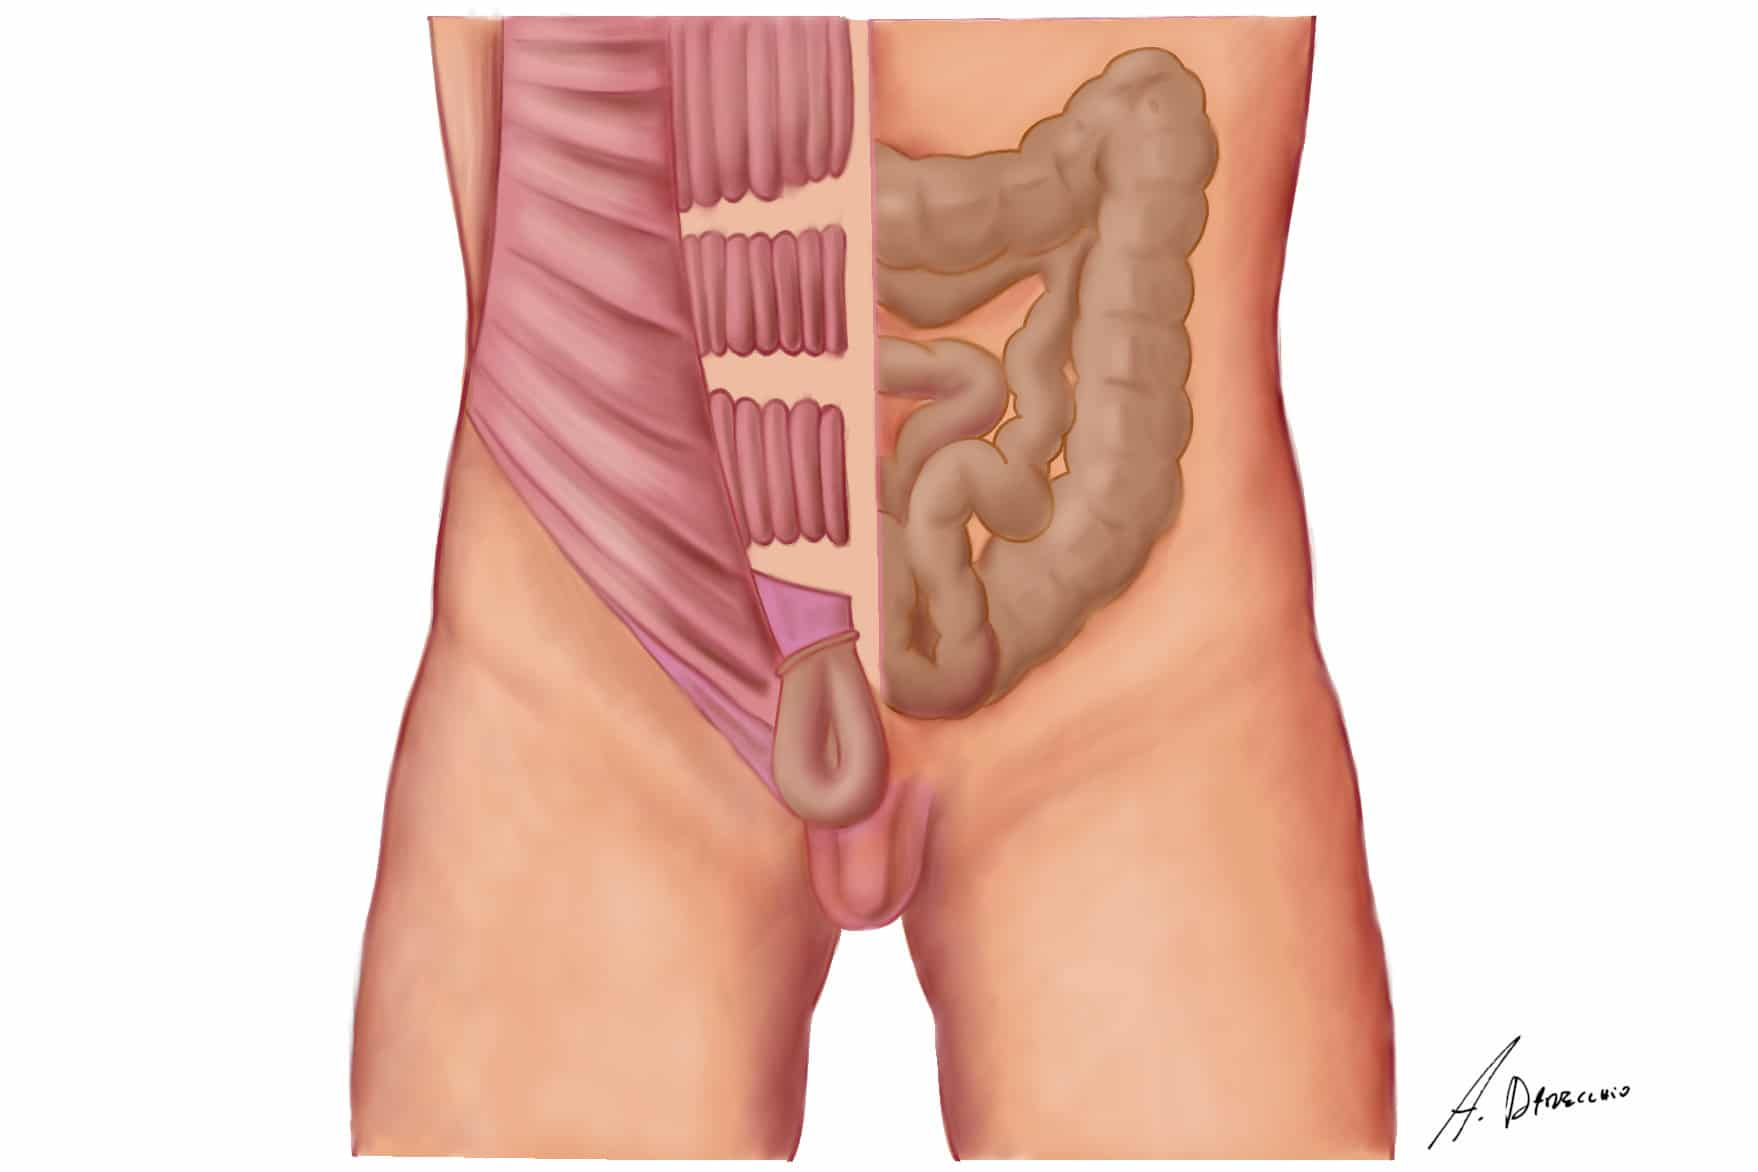 http://www.internationalherniacare.com/wp-content/uploads/2016/04/3.jpg